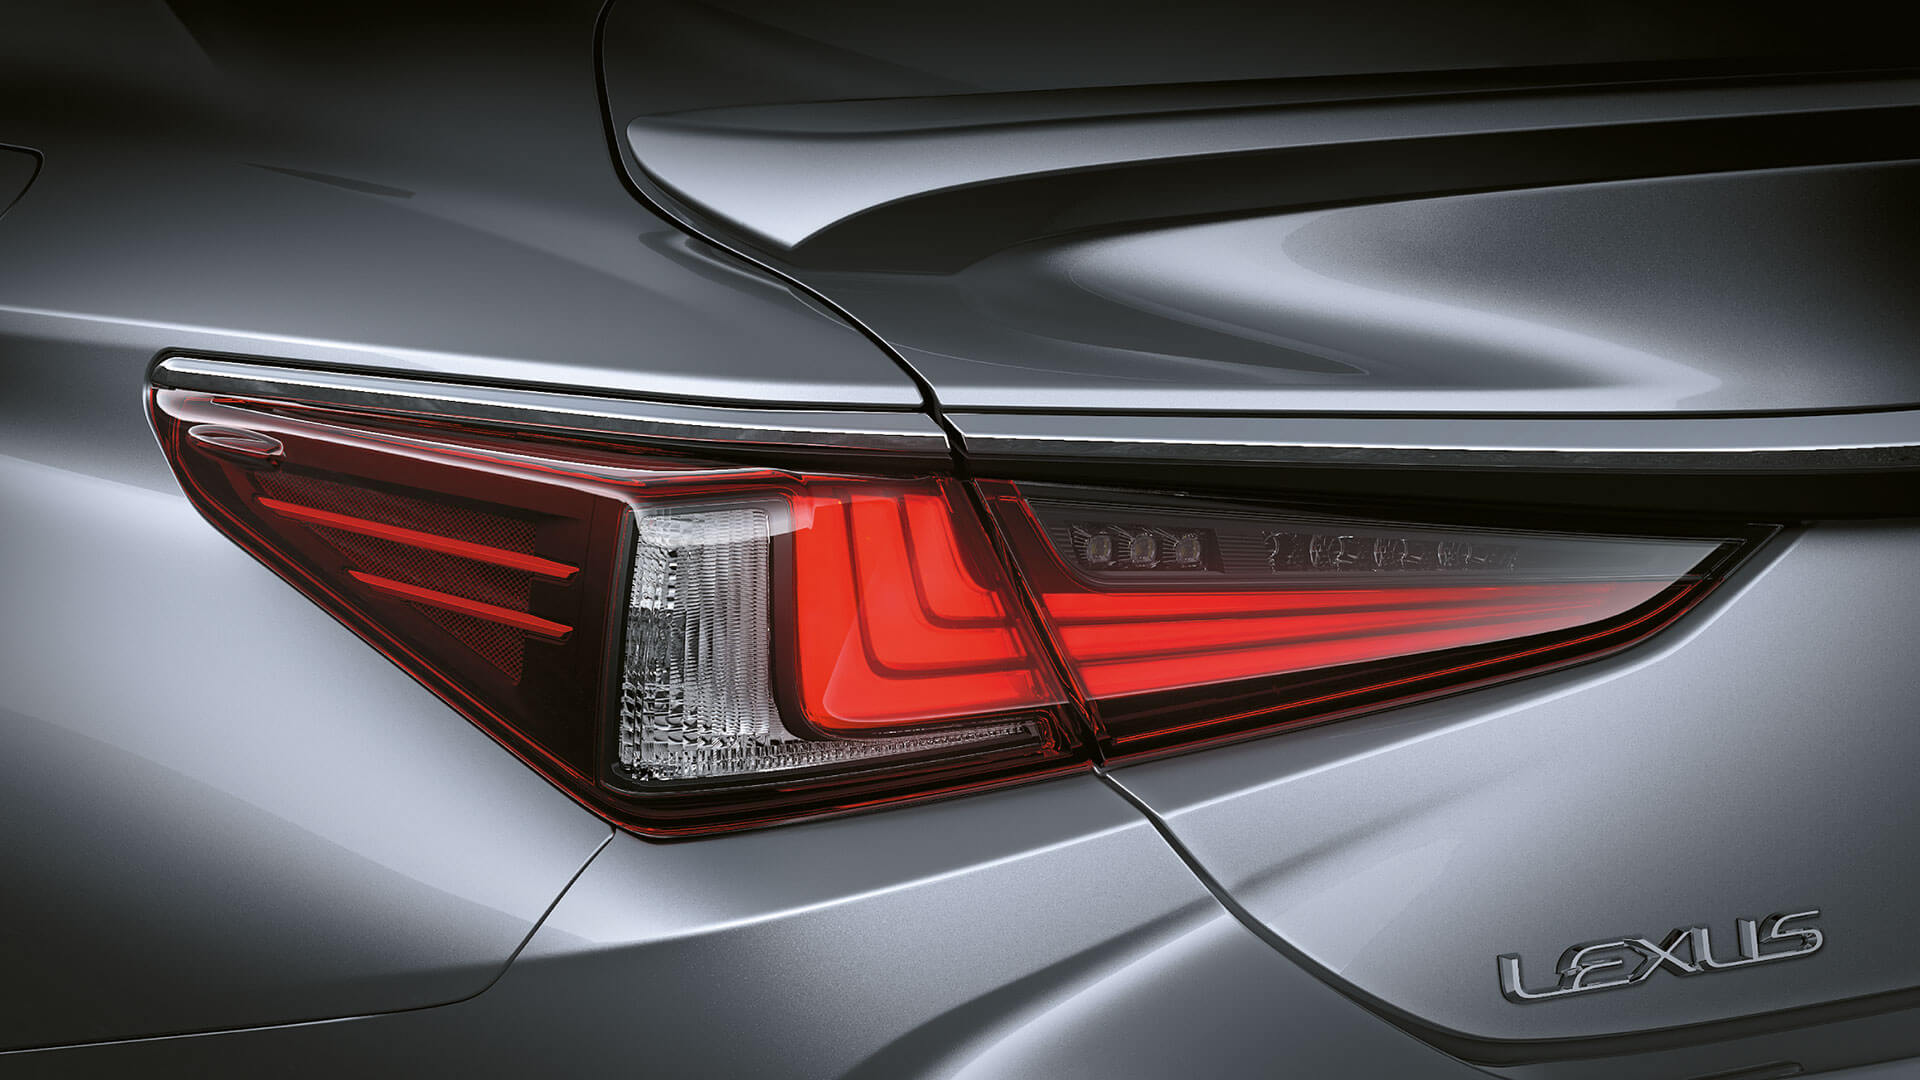 2019 lexus es hybrid experience feature rear led lights